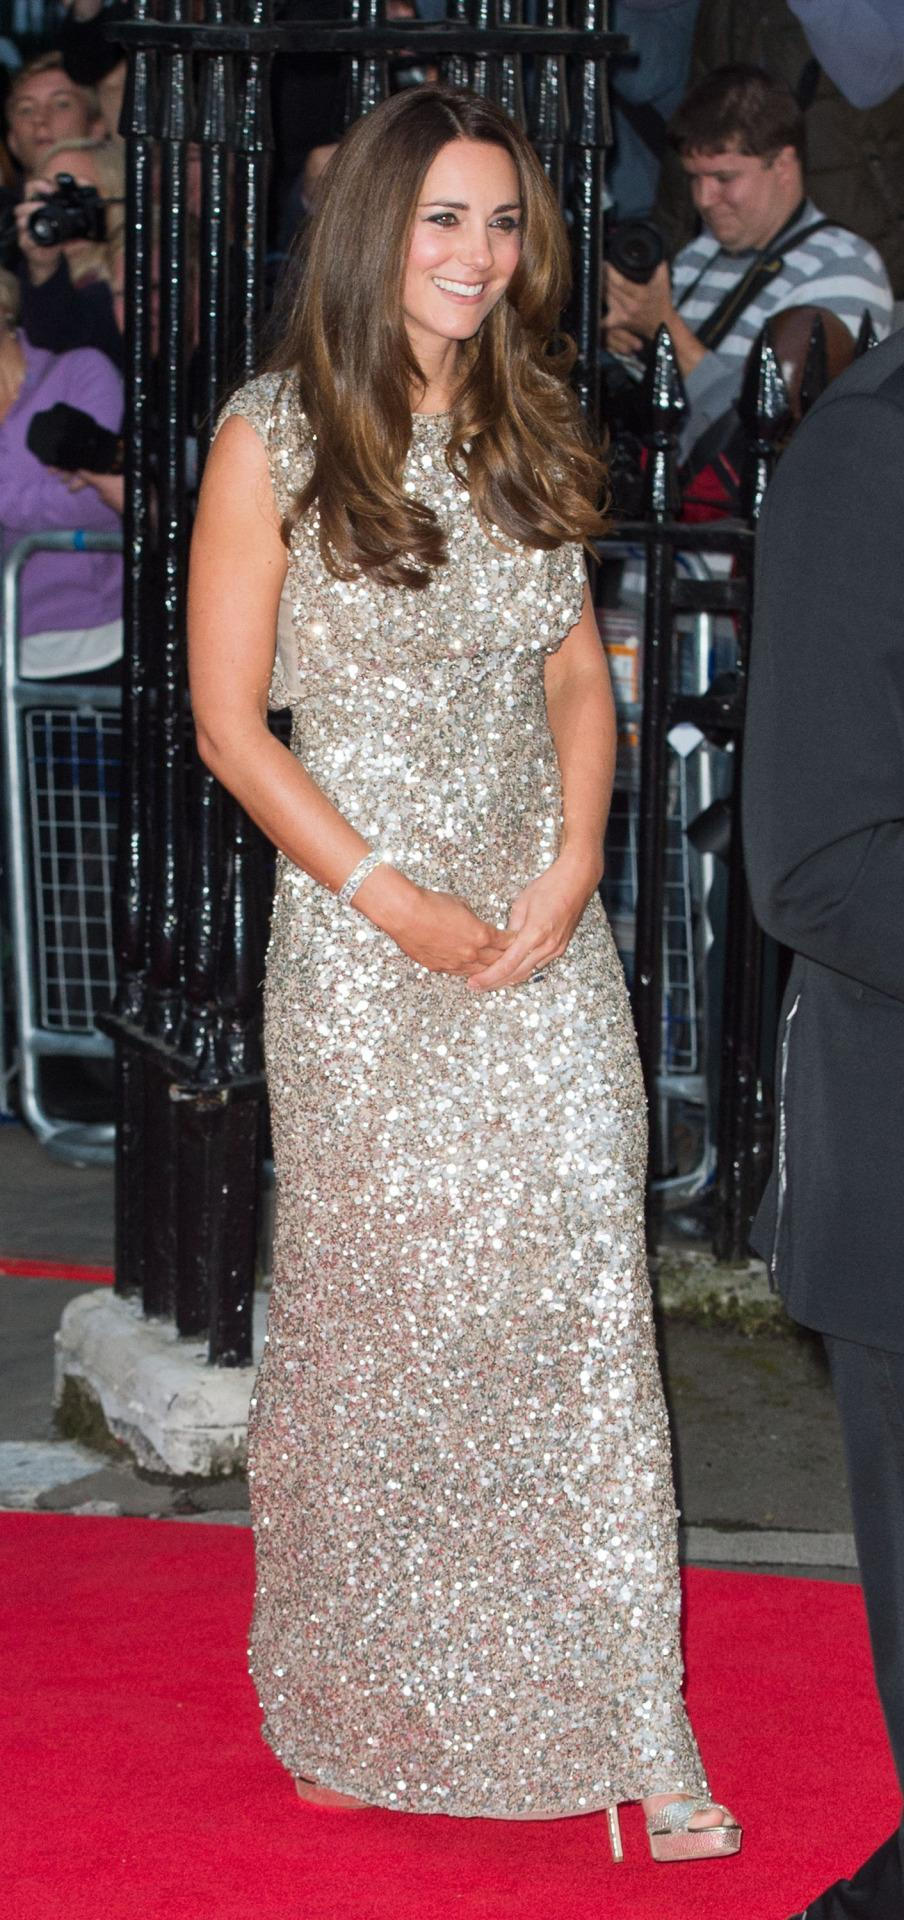 <p>Kate attended an awards ceremony in a glittering gold Jenny Packham gown. She accessorised with matching shiny Jimmy Choo sandals. </p><p><i>[Photo: PA]</i></p>